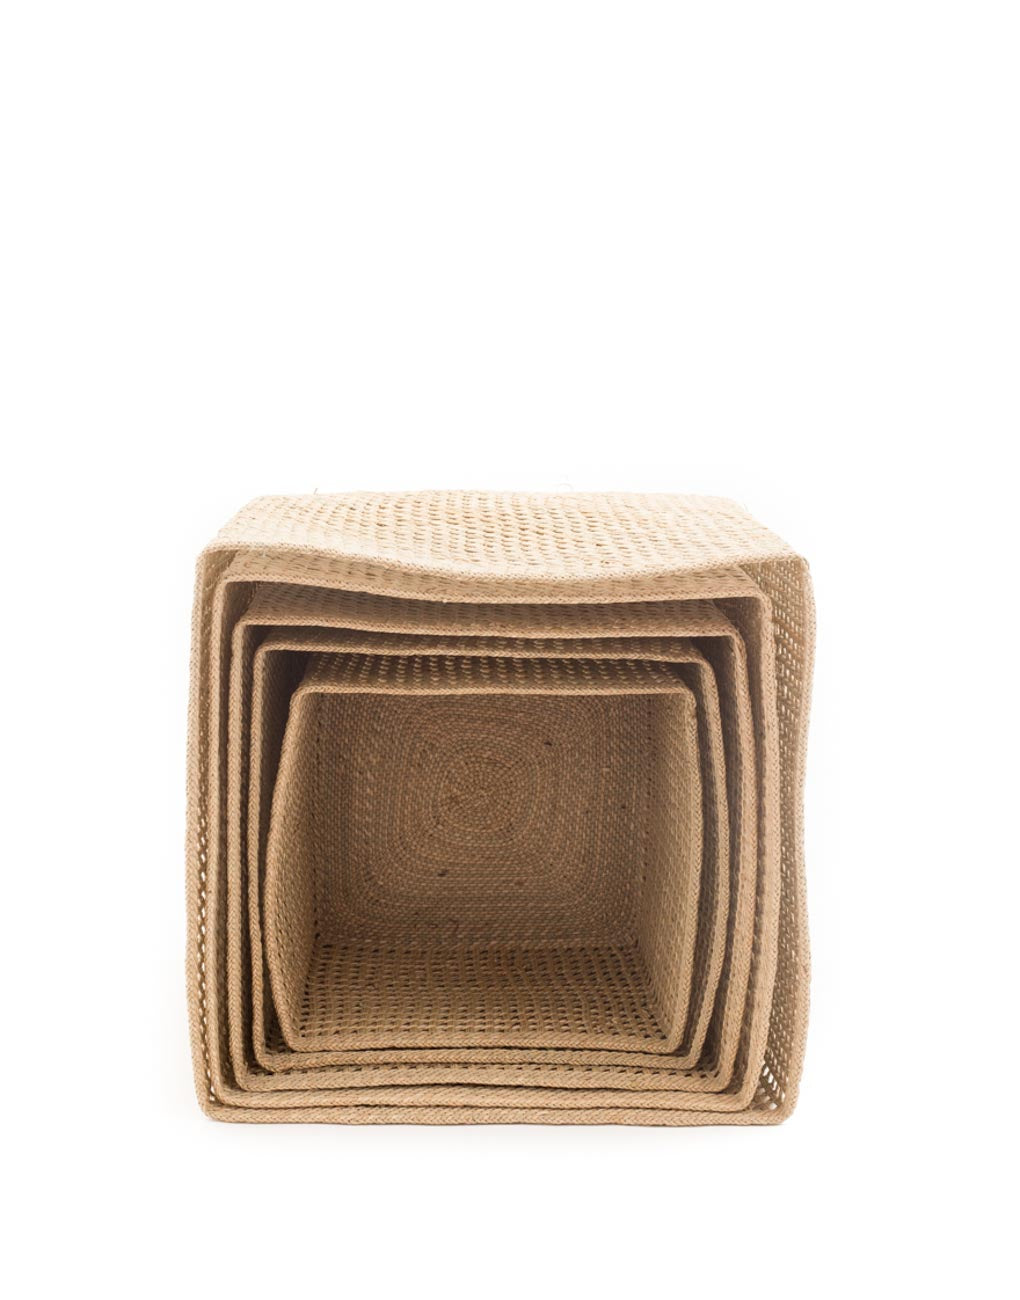 Nesting Square Open Weave Iringa Basket In Natural Front View | The Little Market